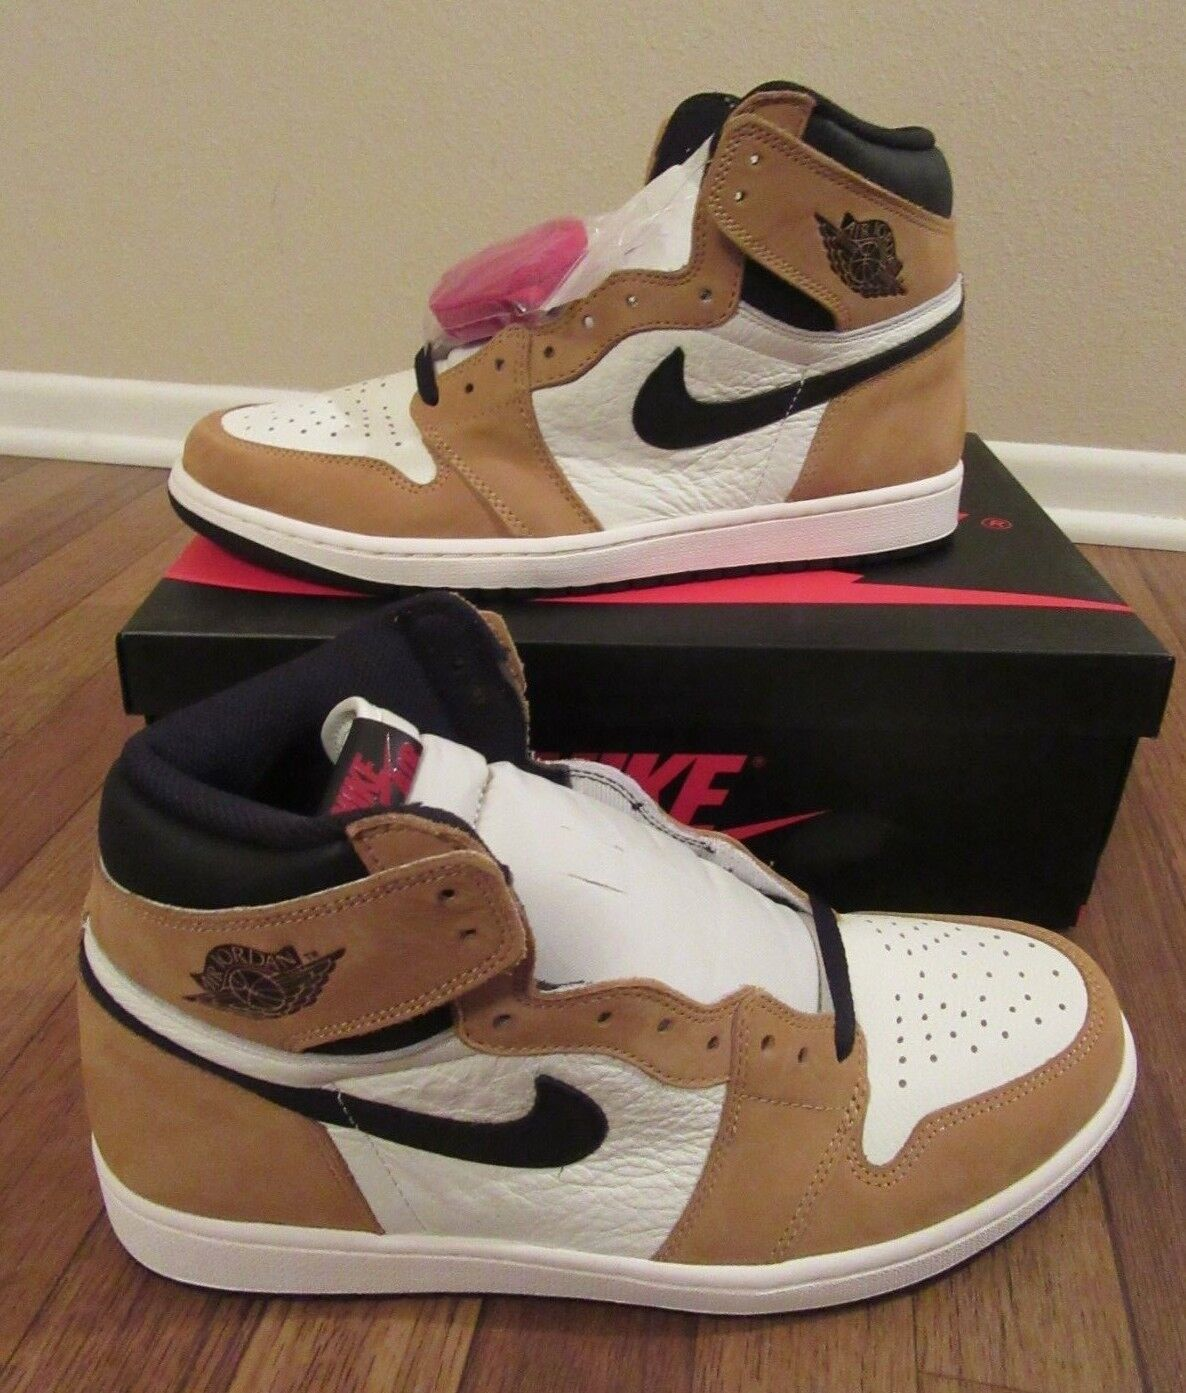 3fdcd8d94f1 Nike Air Jordan 1 Retro High OG Size 11 Harvest Black 555088 700 NIB golden  Sail nxtjxy432-Athletic Shoes